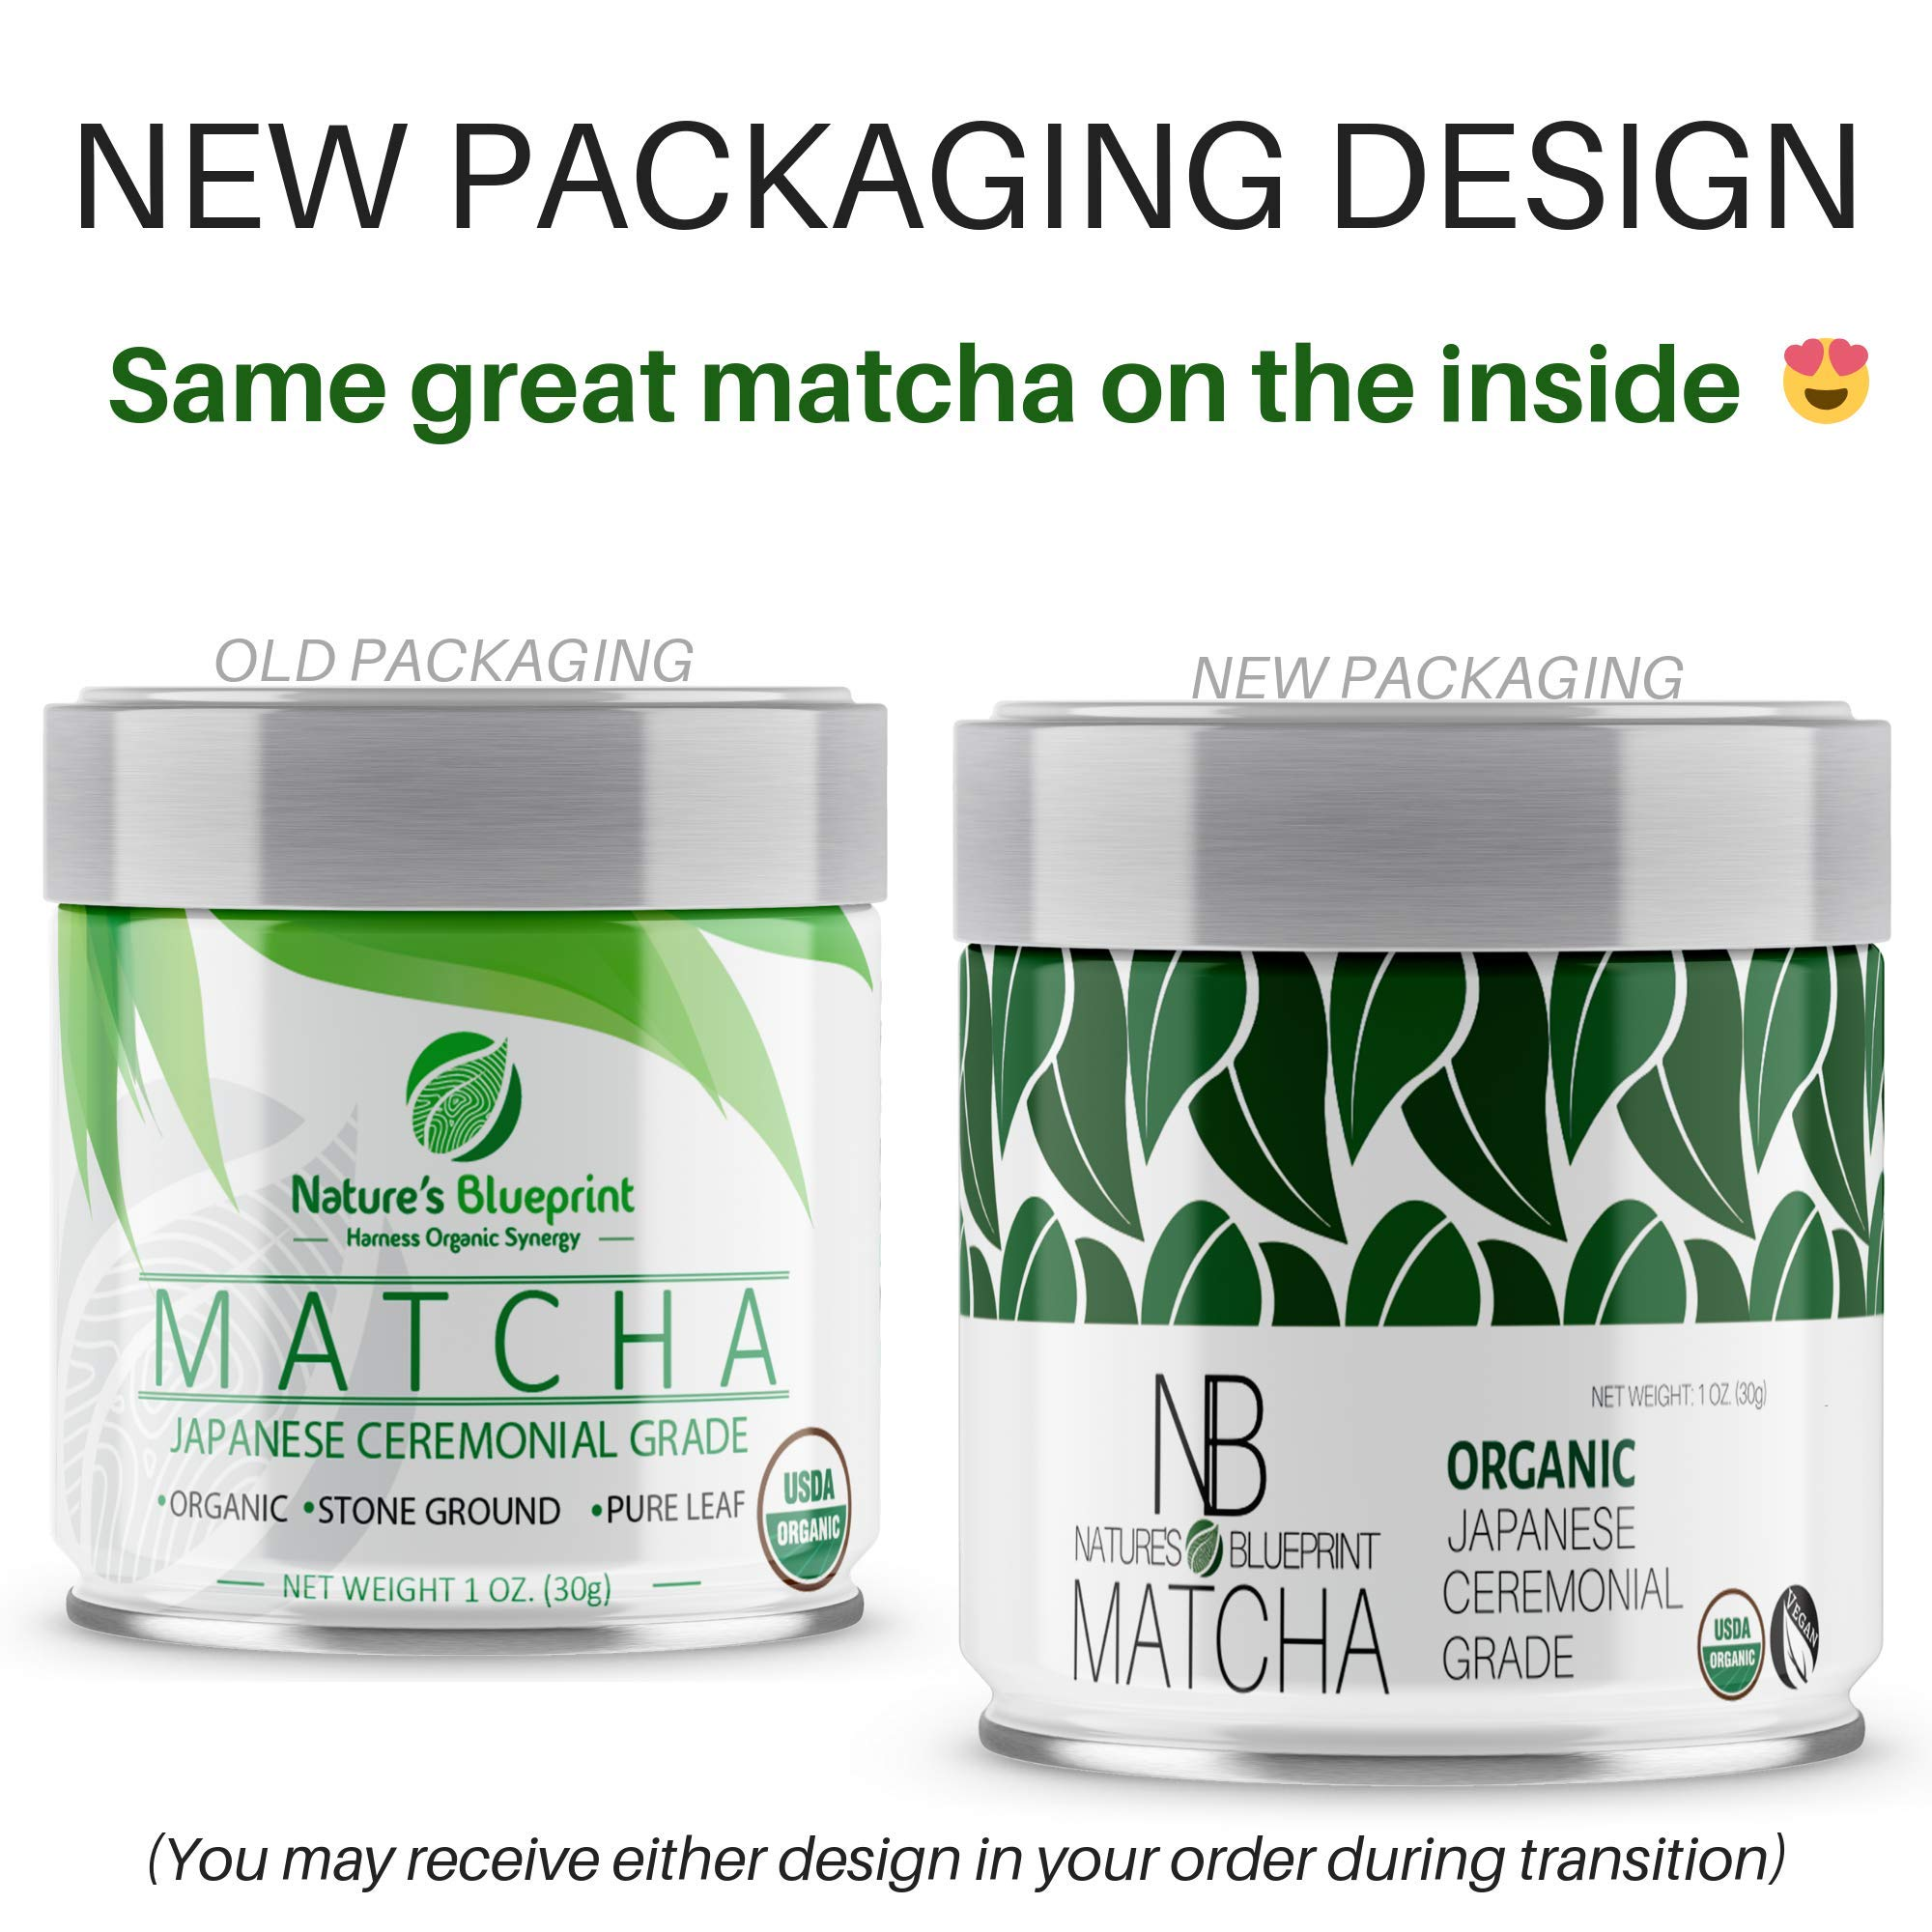 Matcha Green Tea Powder-3 Pk-Organic Japanese Ceremonial Grade Straight from Uji Kyoto, Premium Quality-3 oz BUNDLE contains Powerful Antioxidant Energy for NON-GMO Health. … by Nature's Blueprint (Image #2)